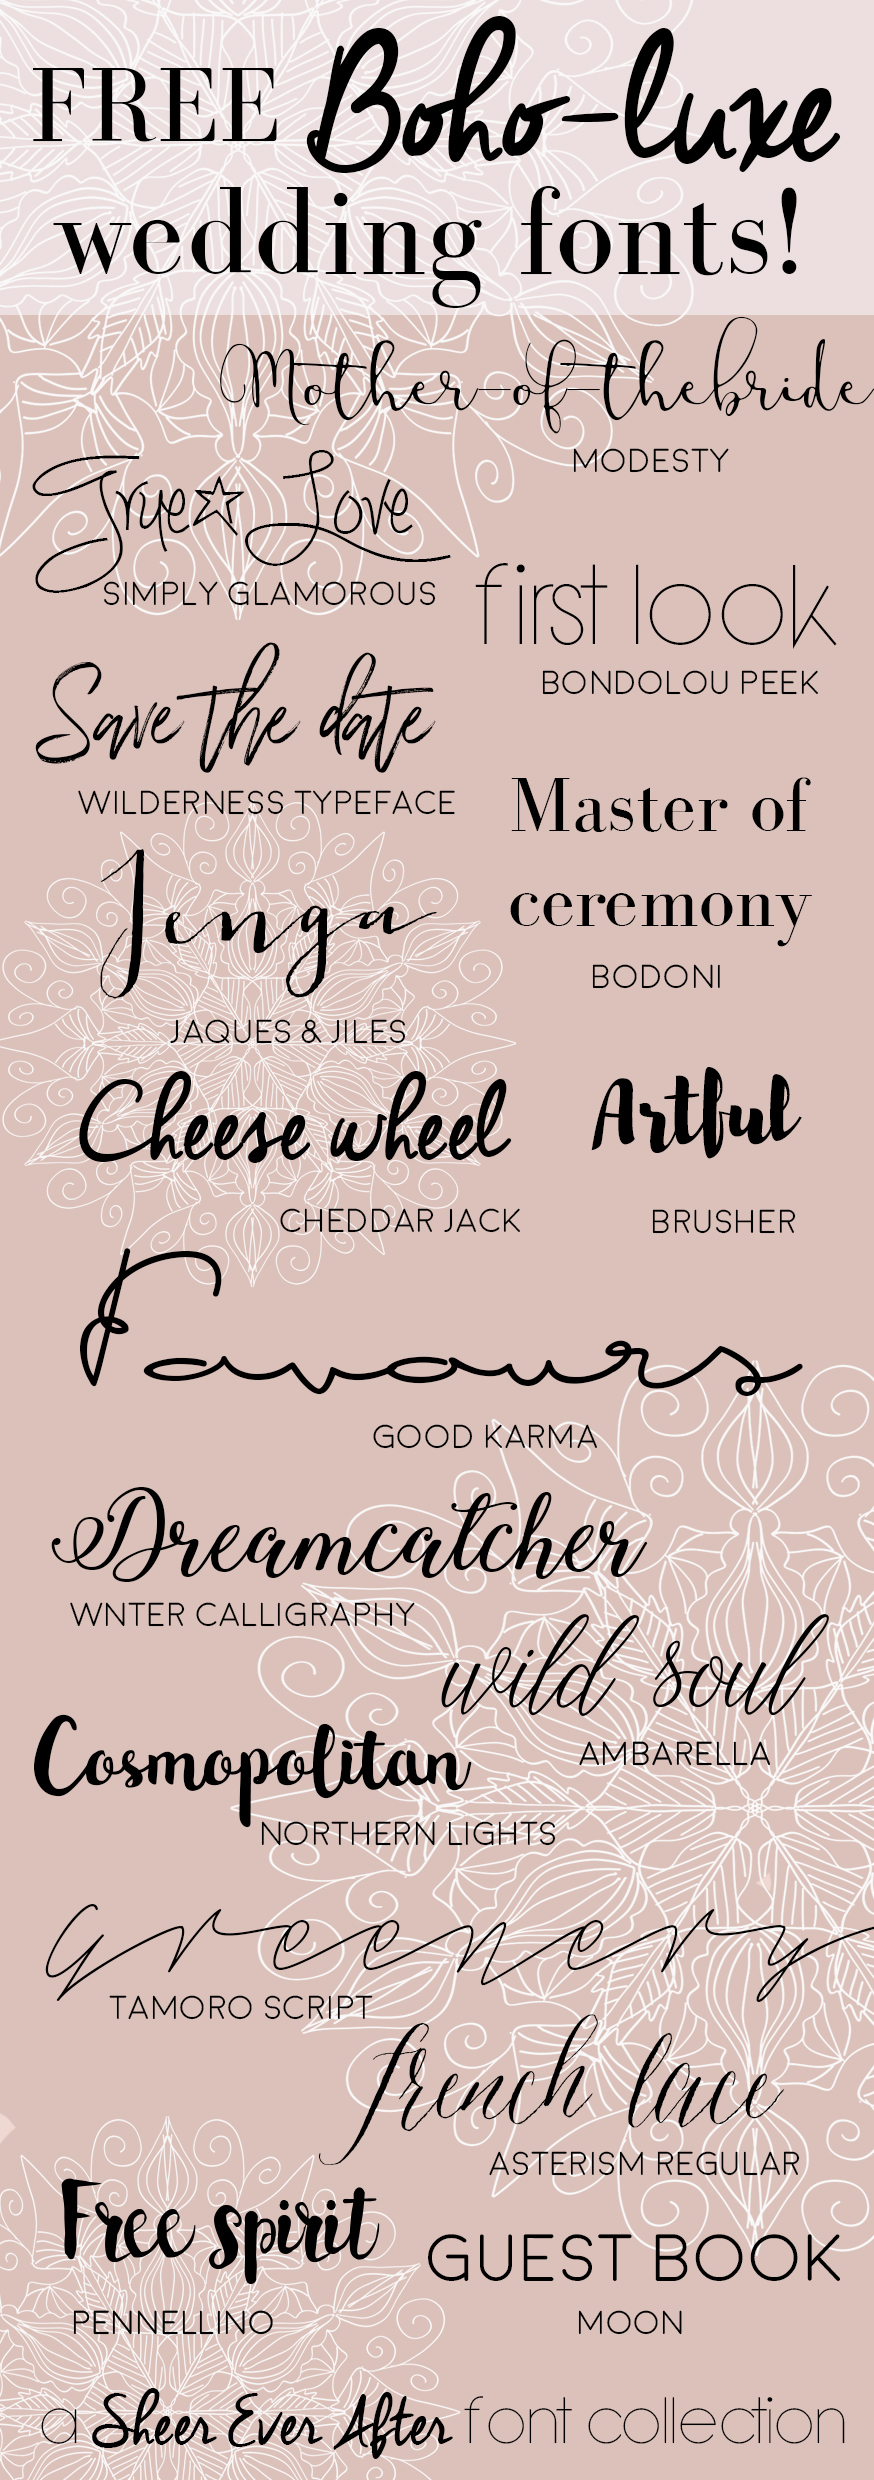 FREE Boho-Luxe Wedding Fonts | | Sheer Ever After